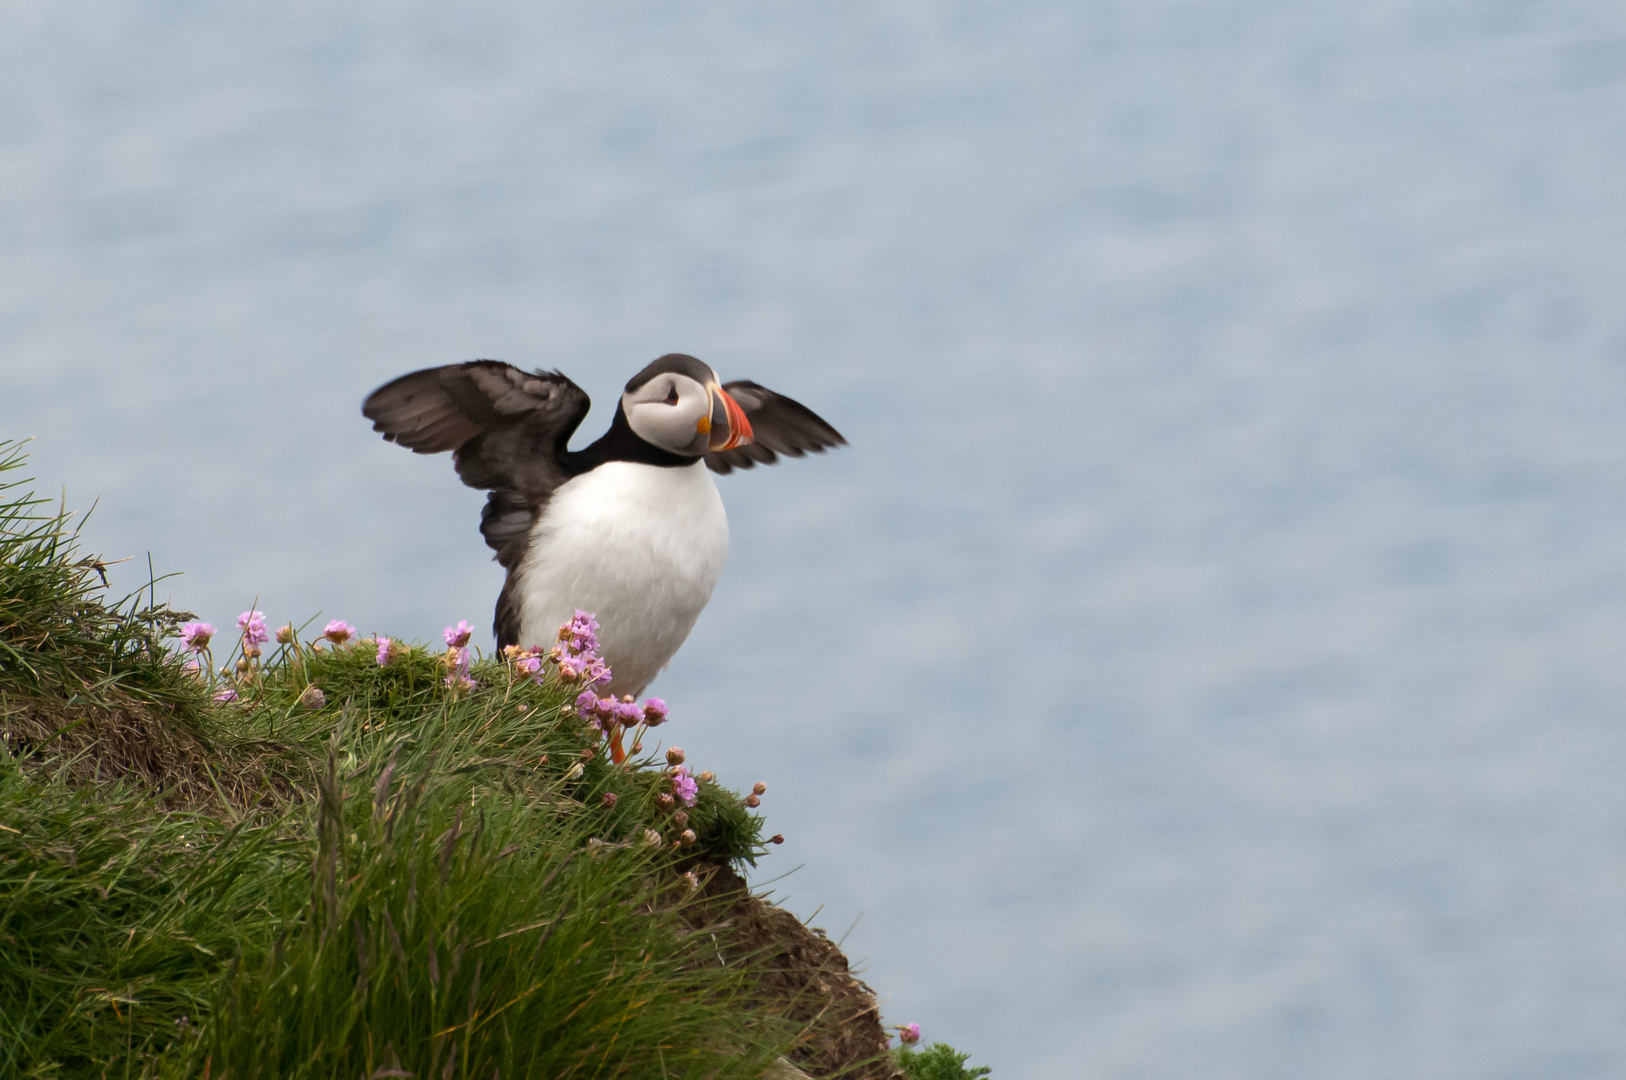 Puffin ready for take-off...